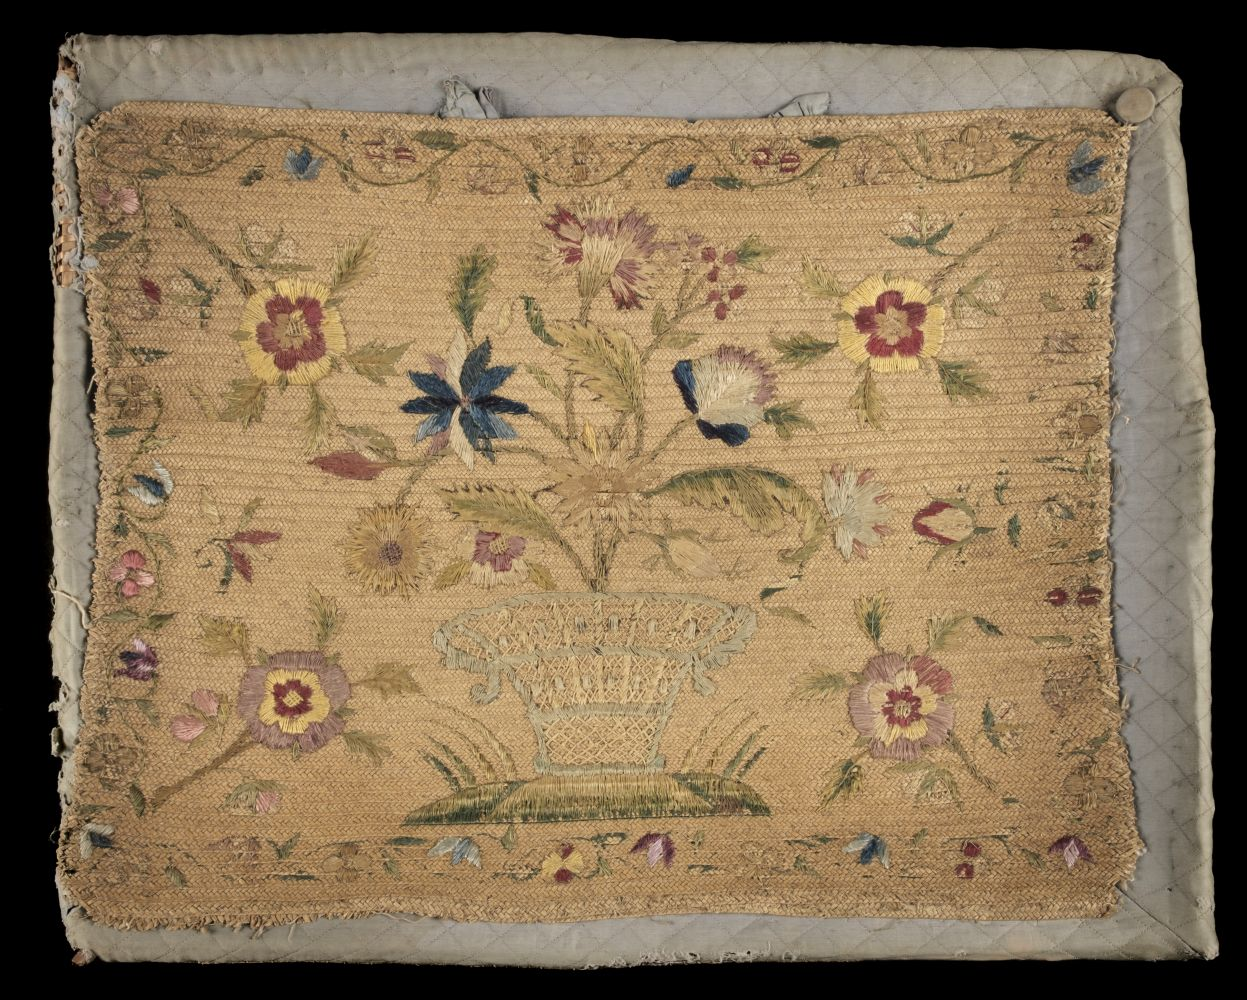 * Embroidered basket. A straw-work layette tray, probably English, mid 18th century